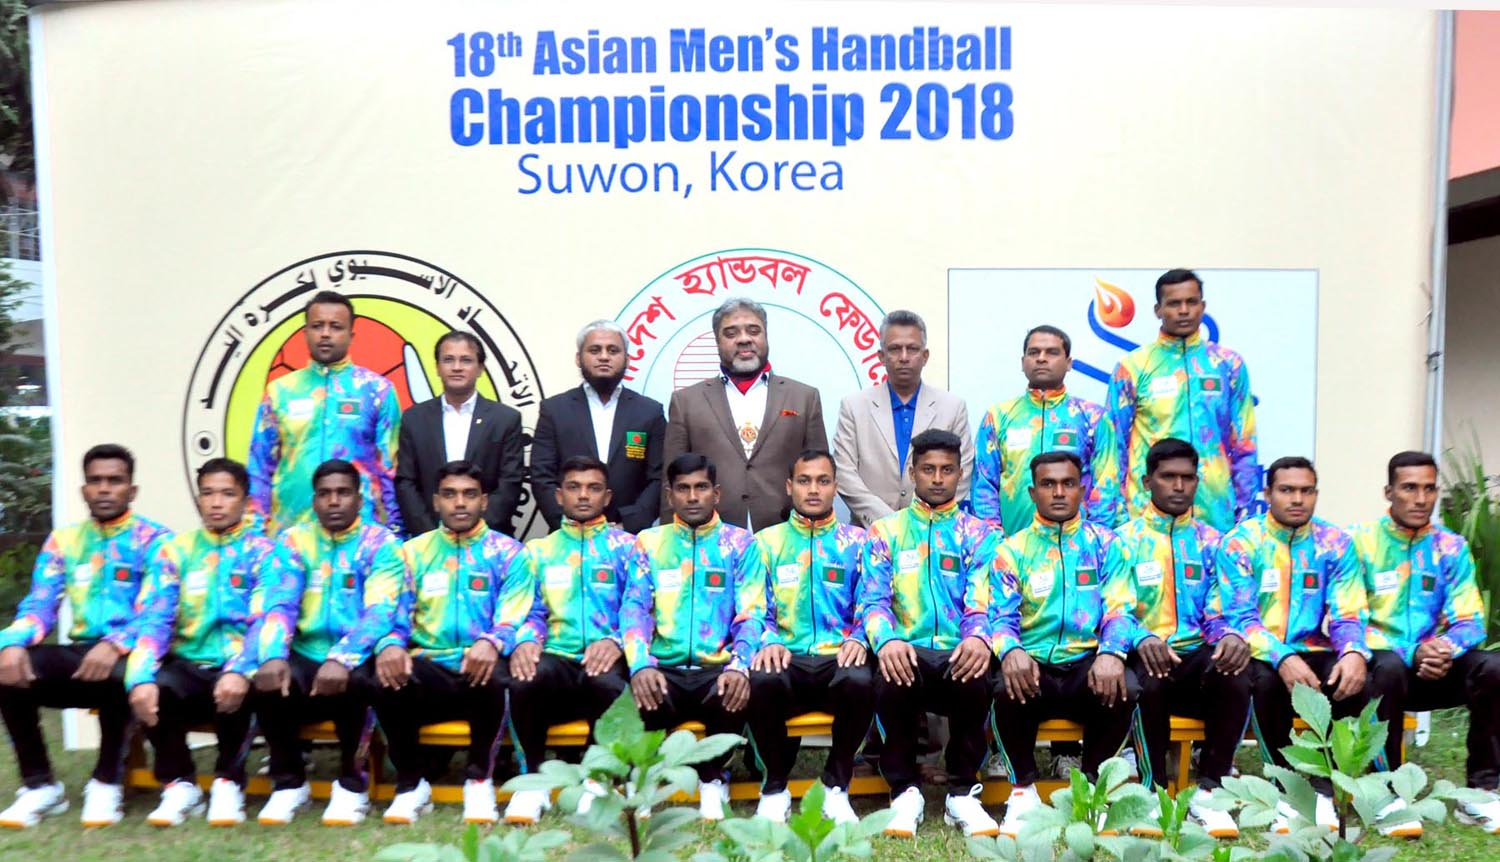 BD Handballers leave for Korea today